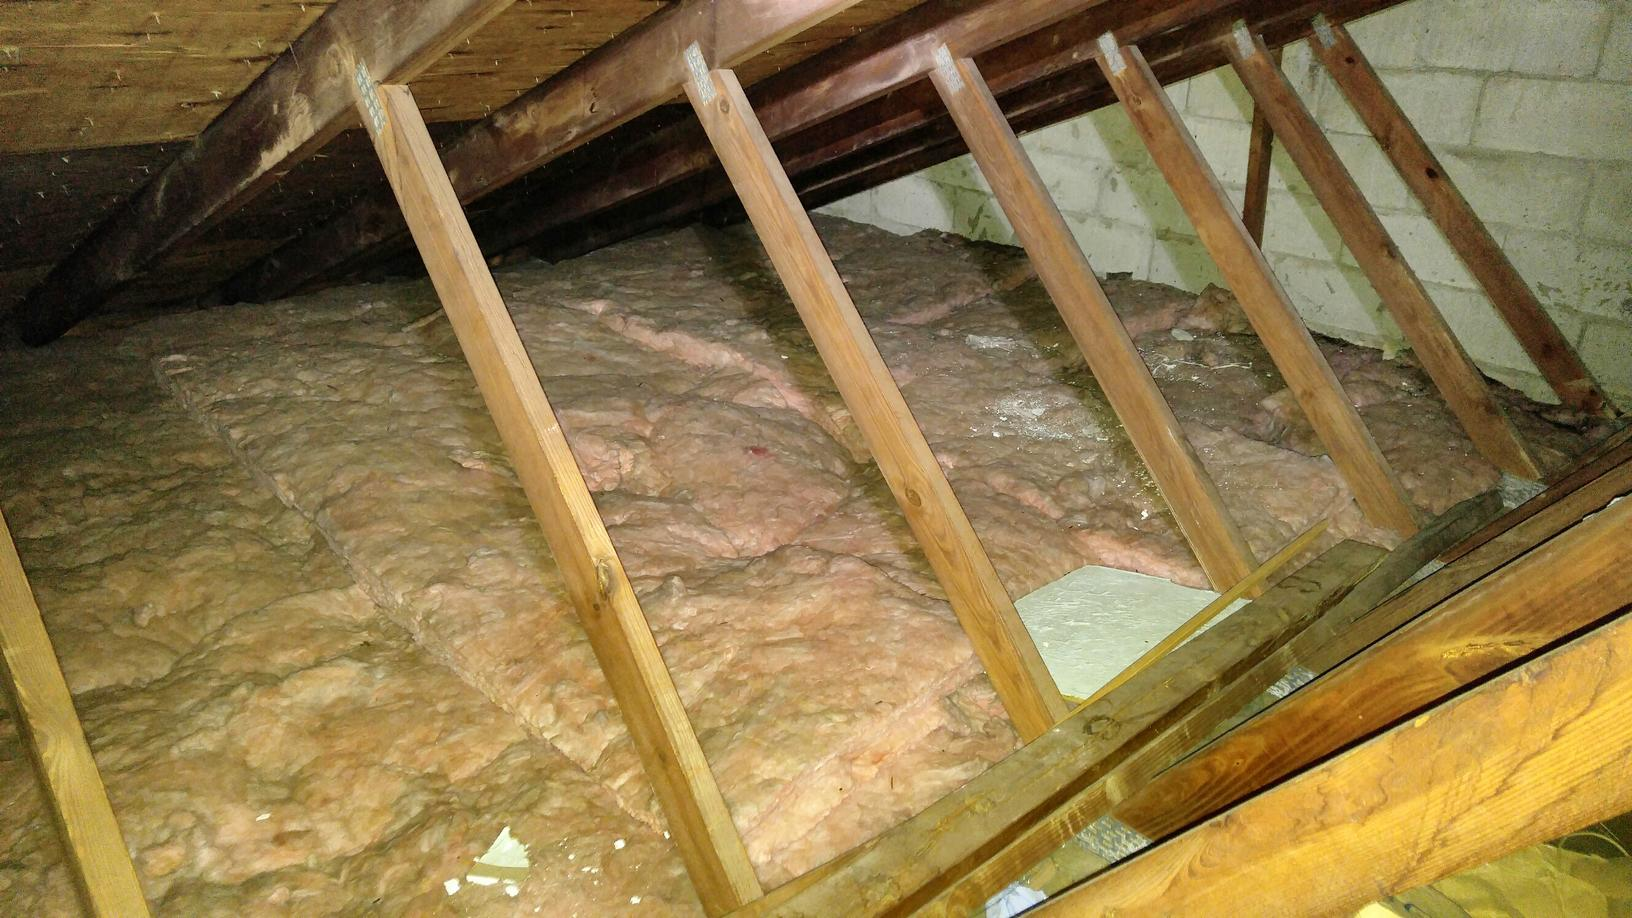 TAP insulation installed after bats make mess in attic - Beachwood bat removal and replacement insulation - Before Photo